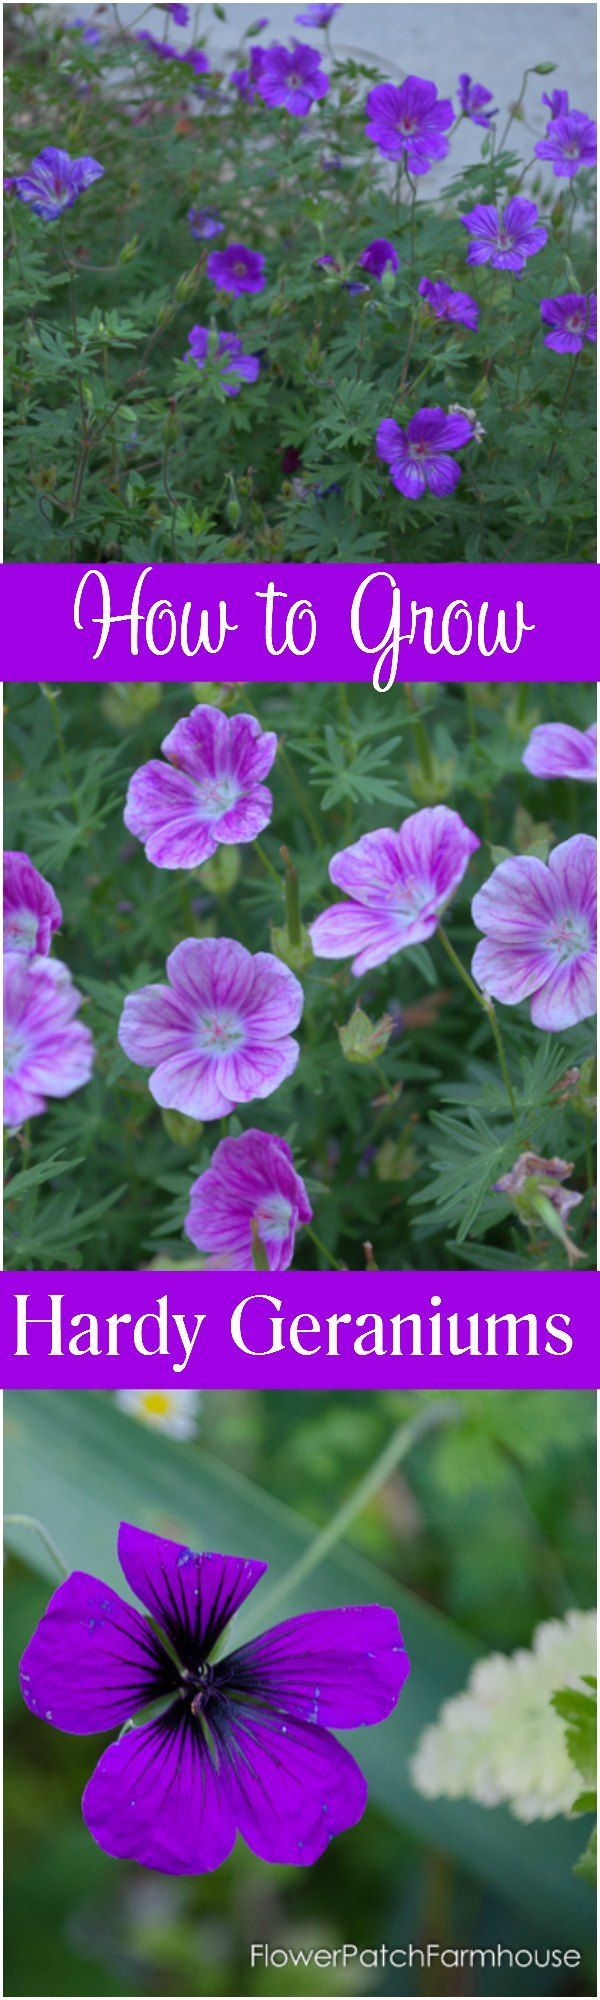 Easy to Grow even for the Beginner! Hardy Geraniums fill in those niches that need a bit of something tough and hardy yet still beautiful and easy to manage! Come garden with me! http://FlowerPatchFarmhouse.com